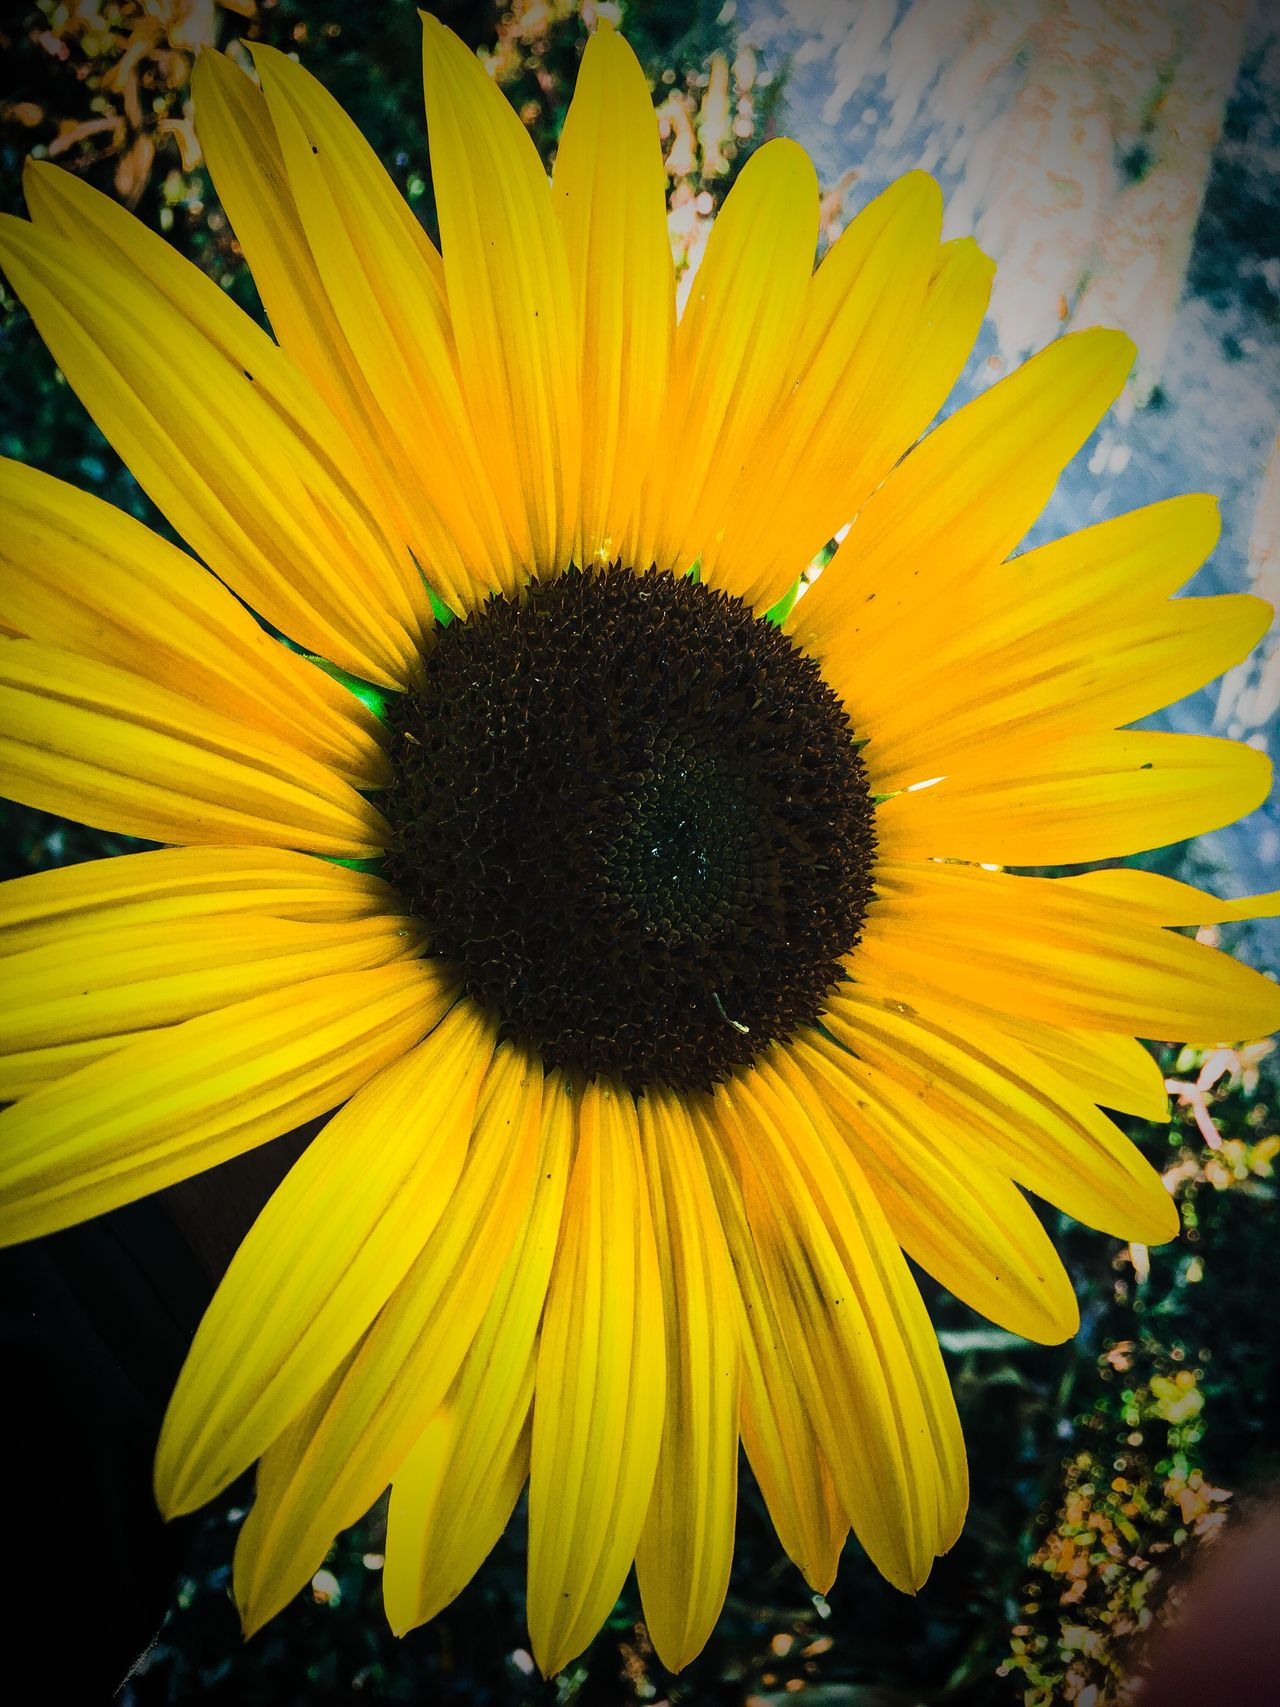 Beautifully Organized sunflower petals Flower Beauty In Nature Fragility Petal Flower Head Nature Freshness Yellow Pollen Sunflower Close-up Growth Plant Day Outdoors Black-eyed Susan No People